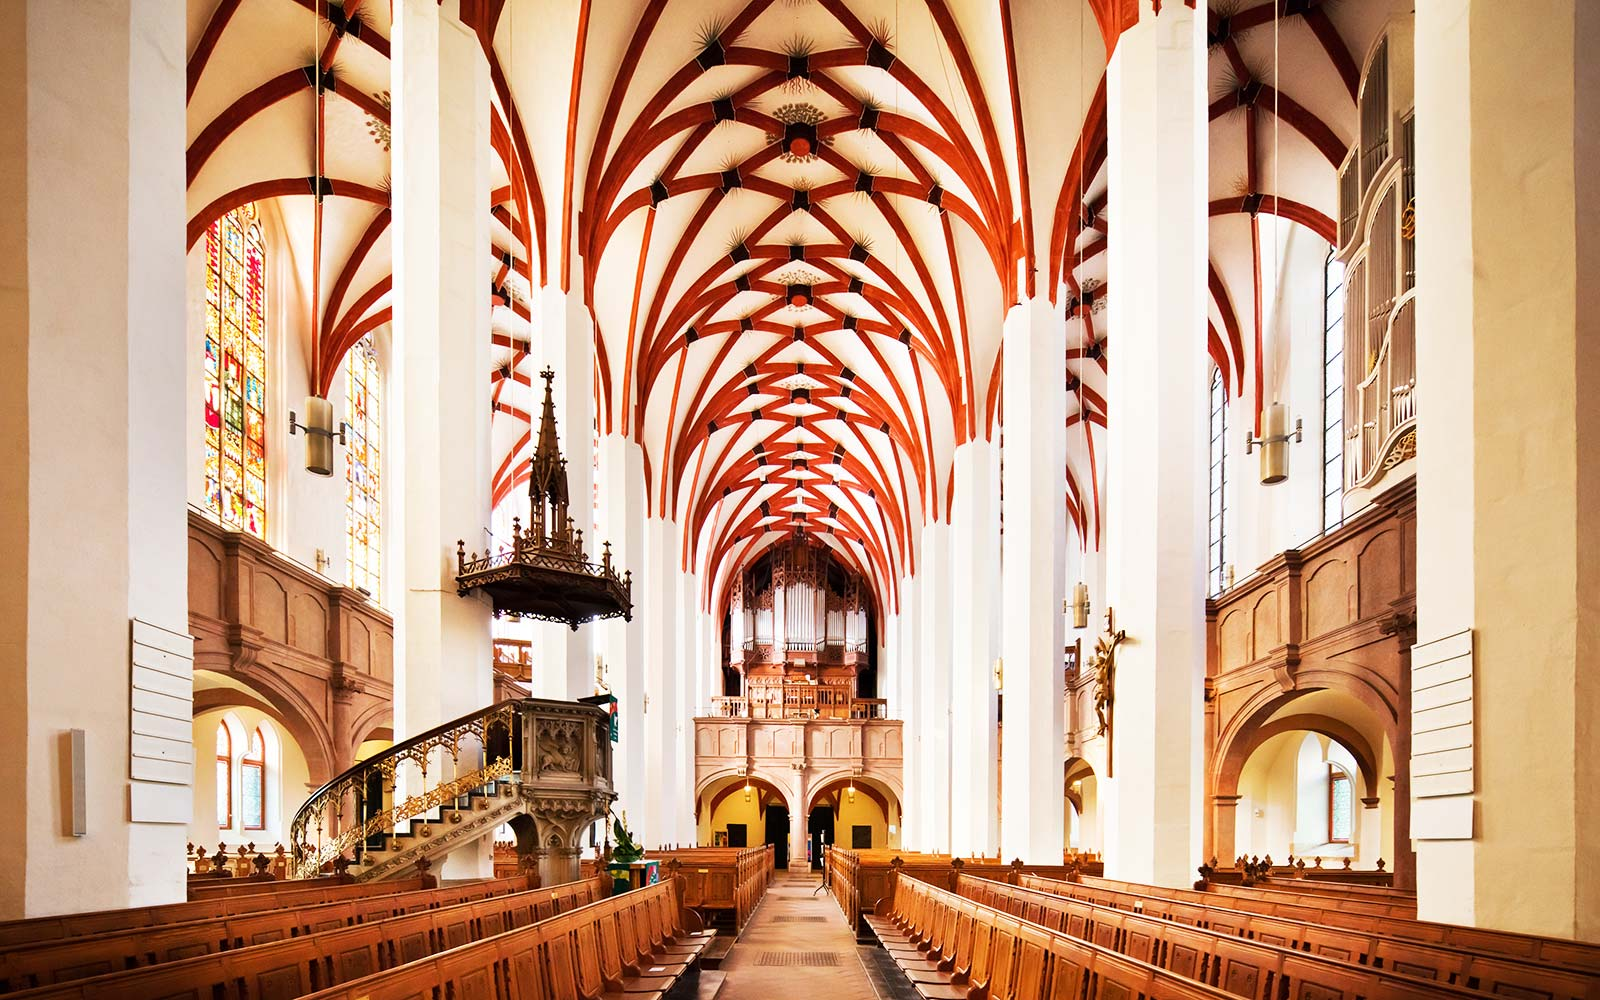 Follow in the Footsteps of J. S. Bach on This Musical Tour of Germany